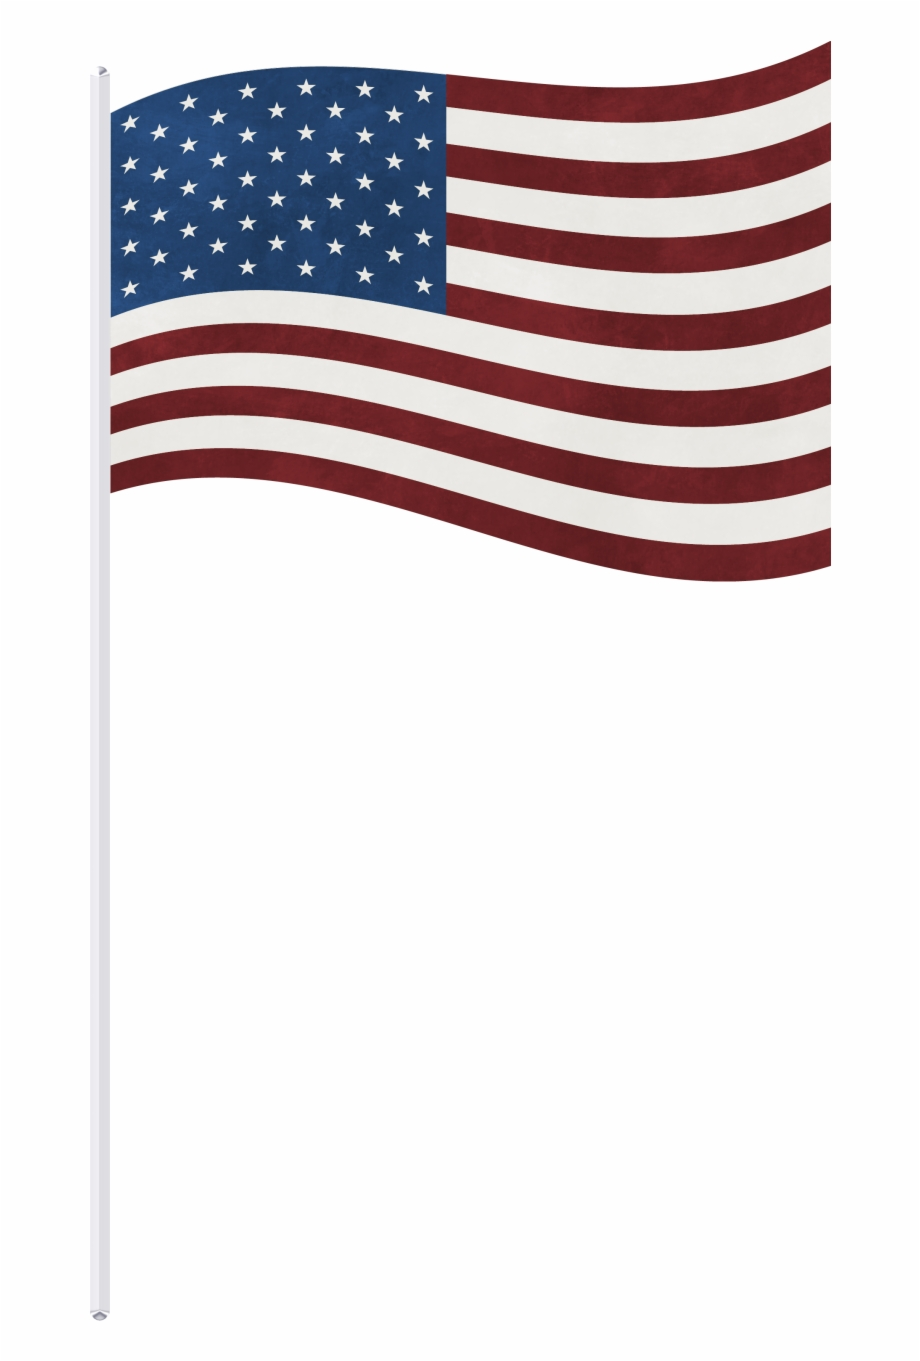 Free American Flag On Pole Png, Download Free Clip Art, Free.